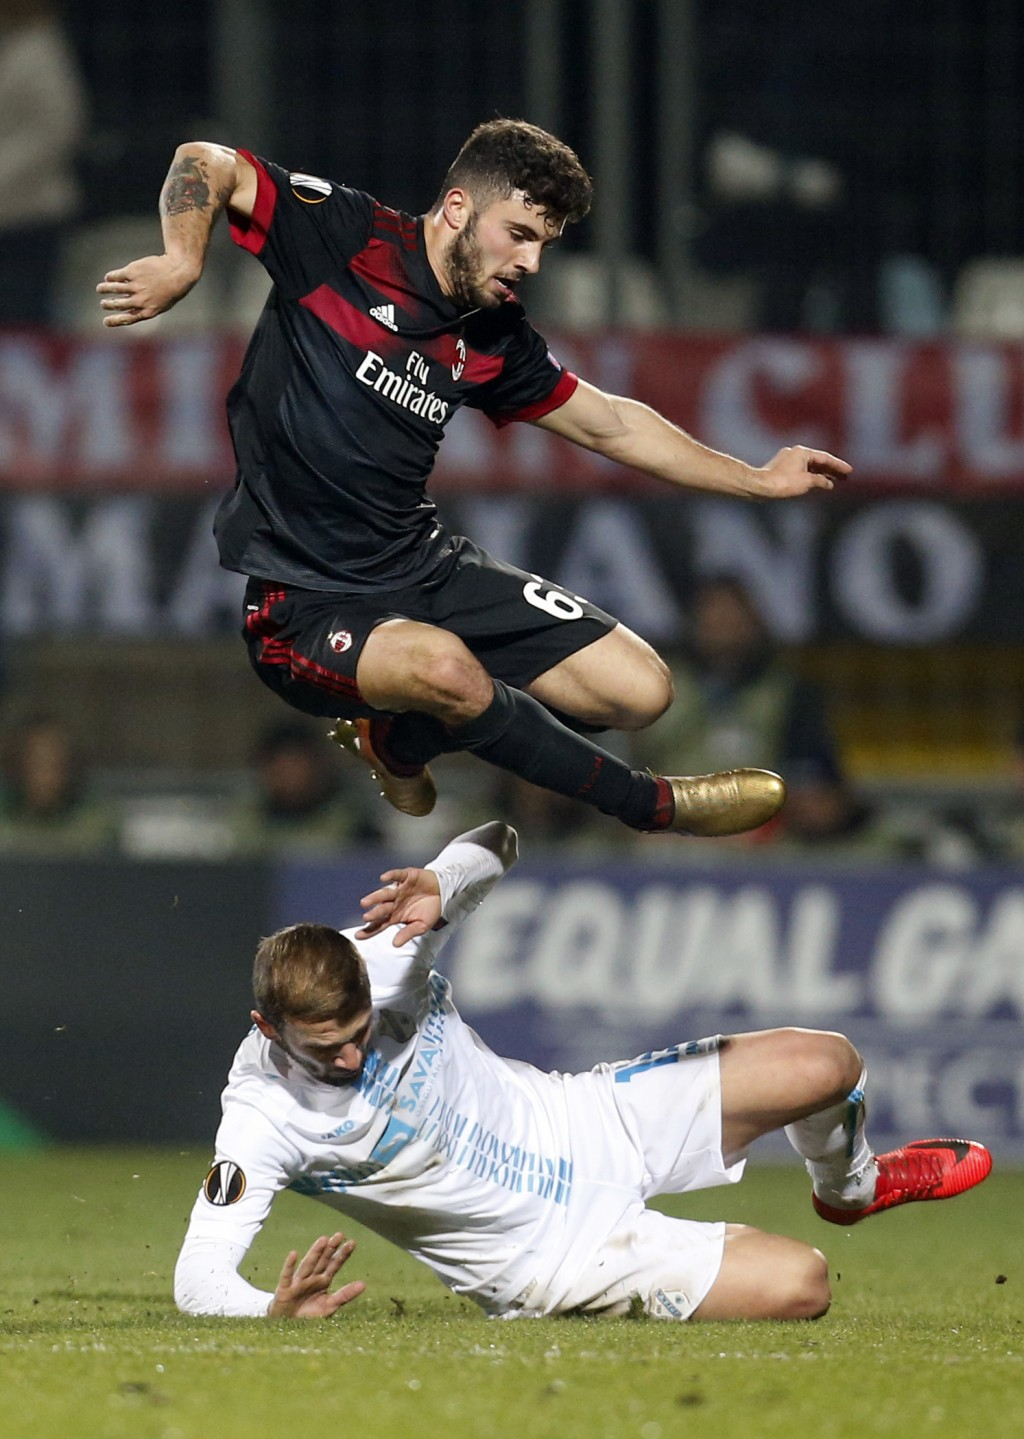 Milan's Patrick Cutrone, top, jumps over Rijeka's Dario Zuparic during the group D Europa League soccer match between Rijeka and Milan, at the Rujevic